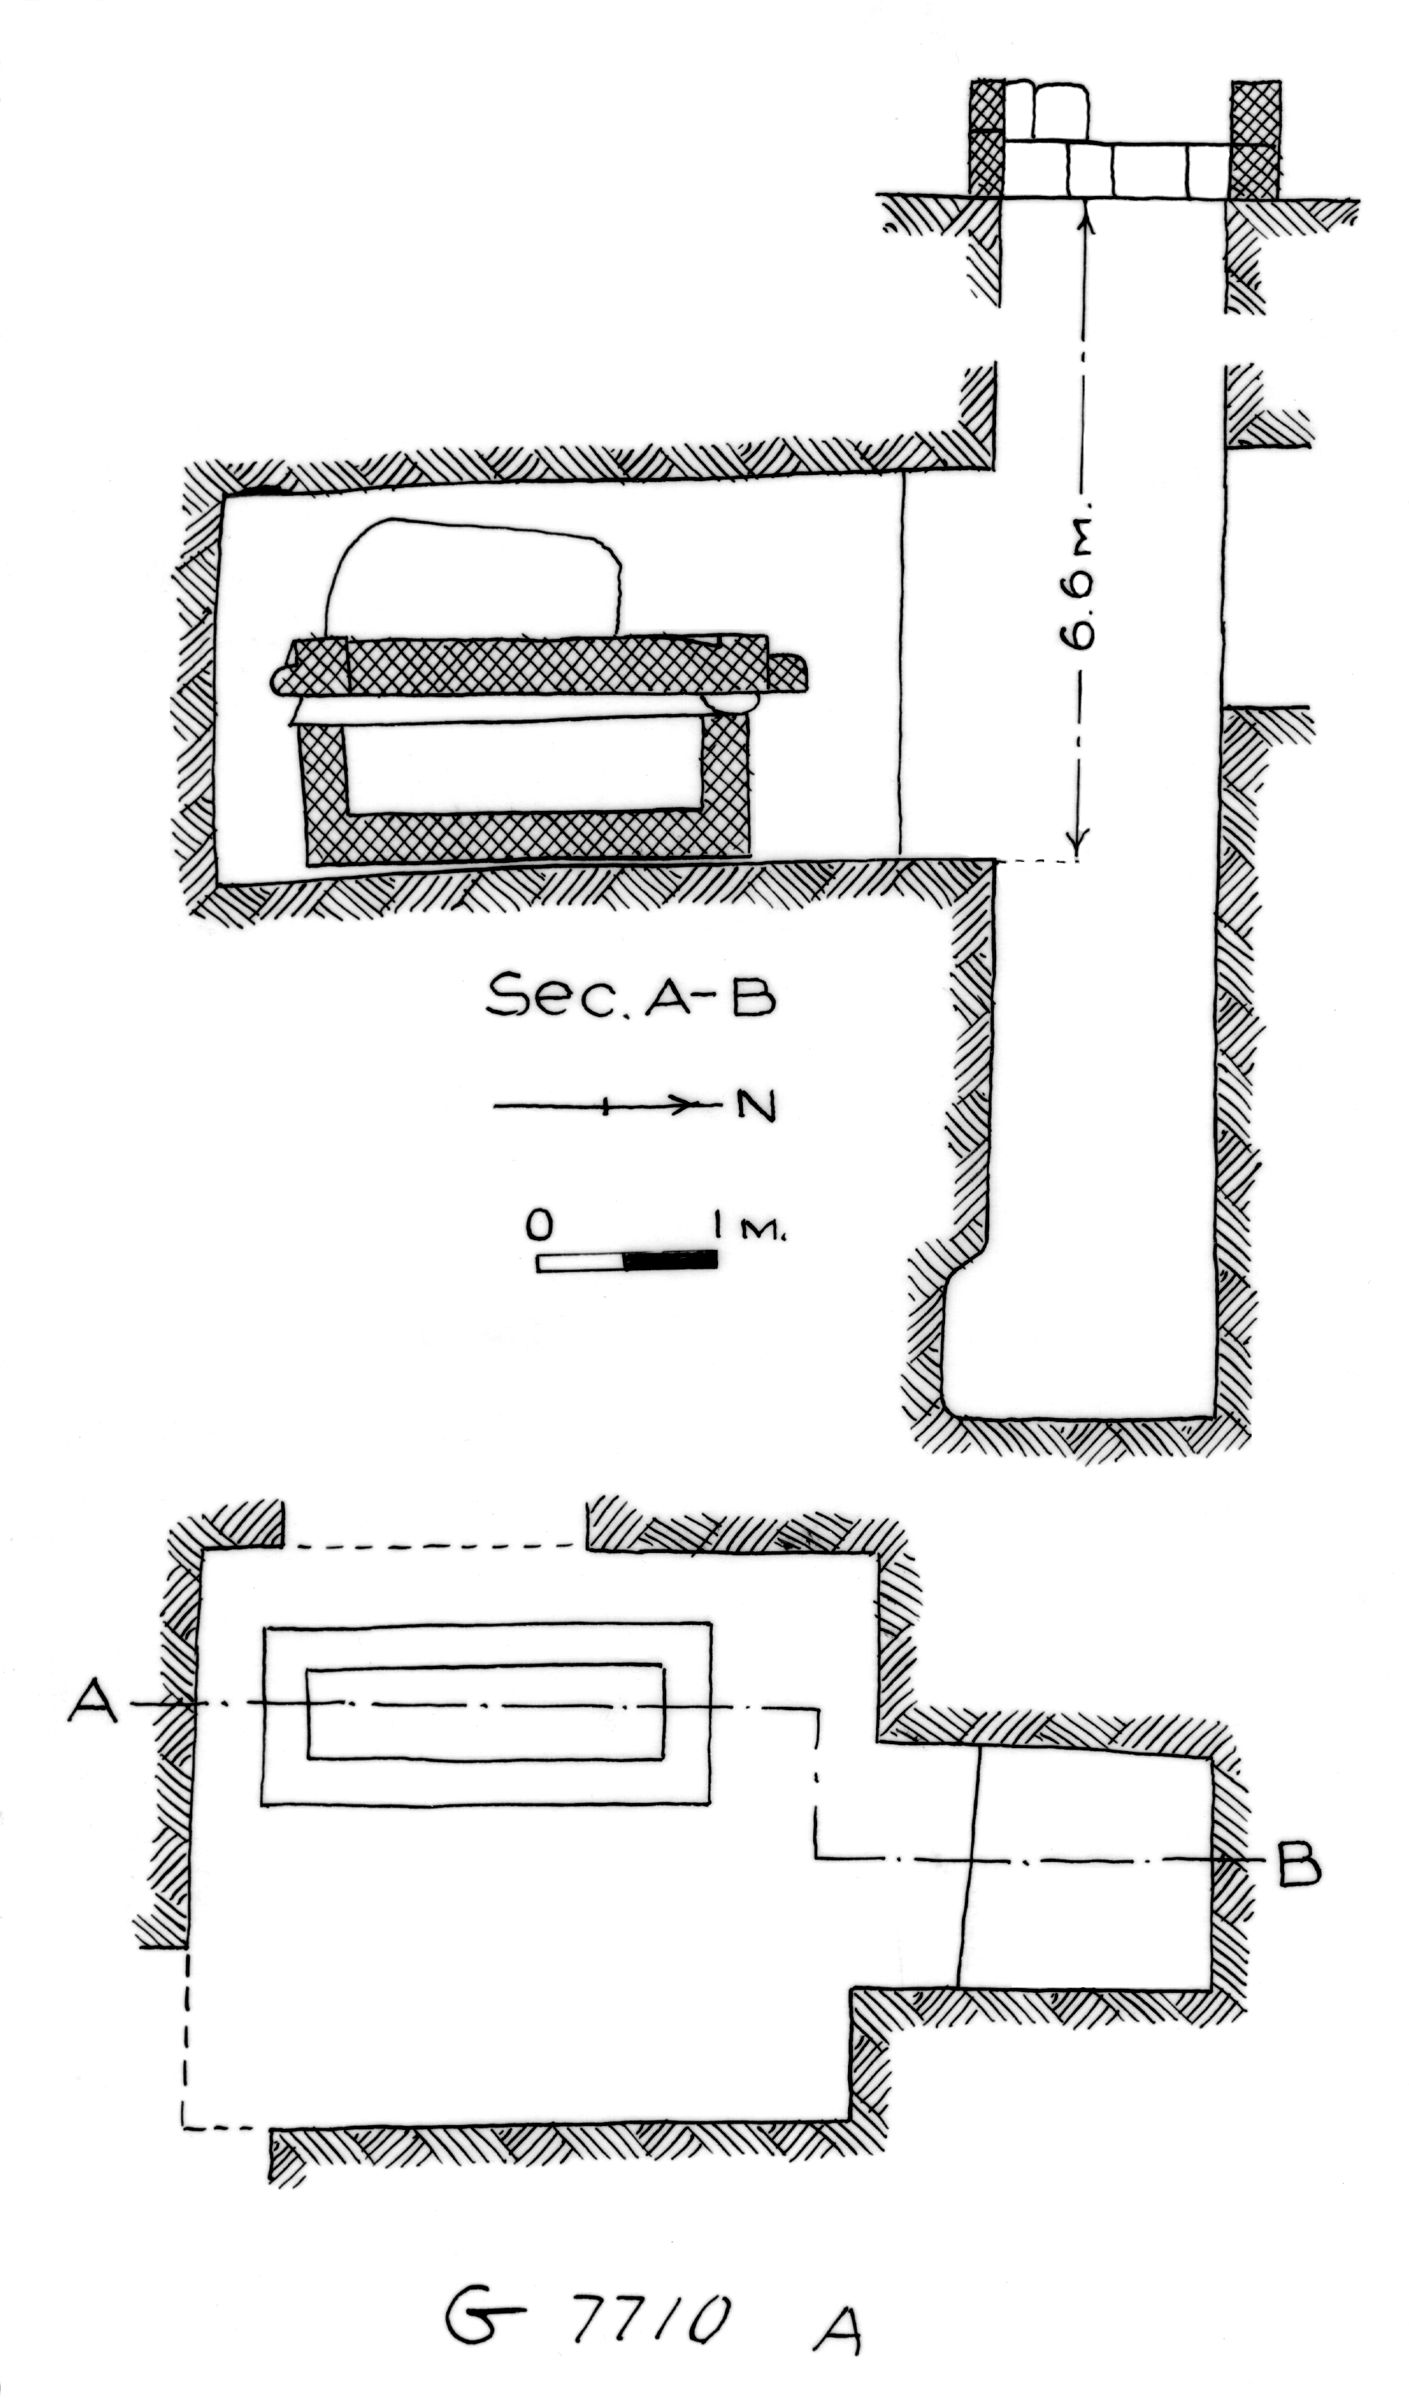 Maps and plans: G 7710, Shaft A